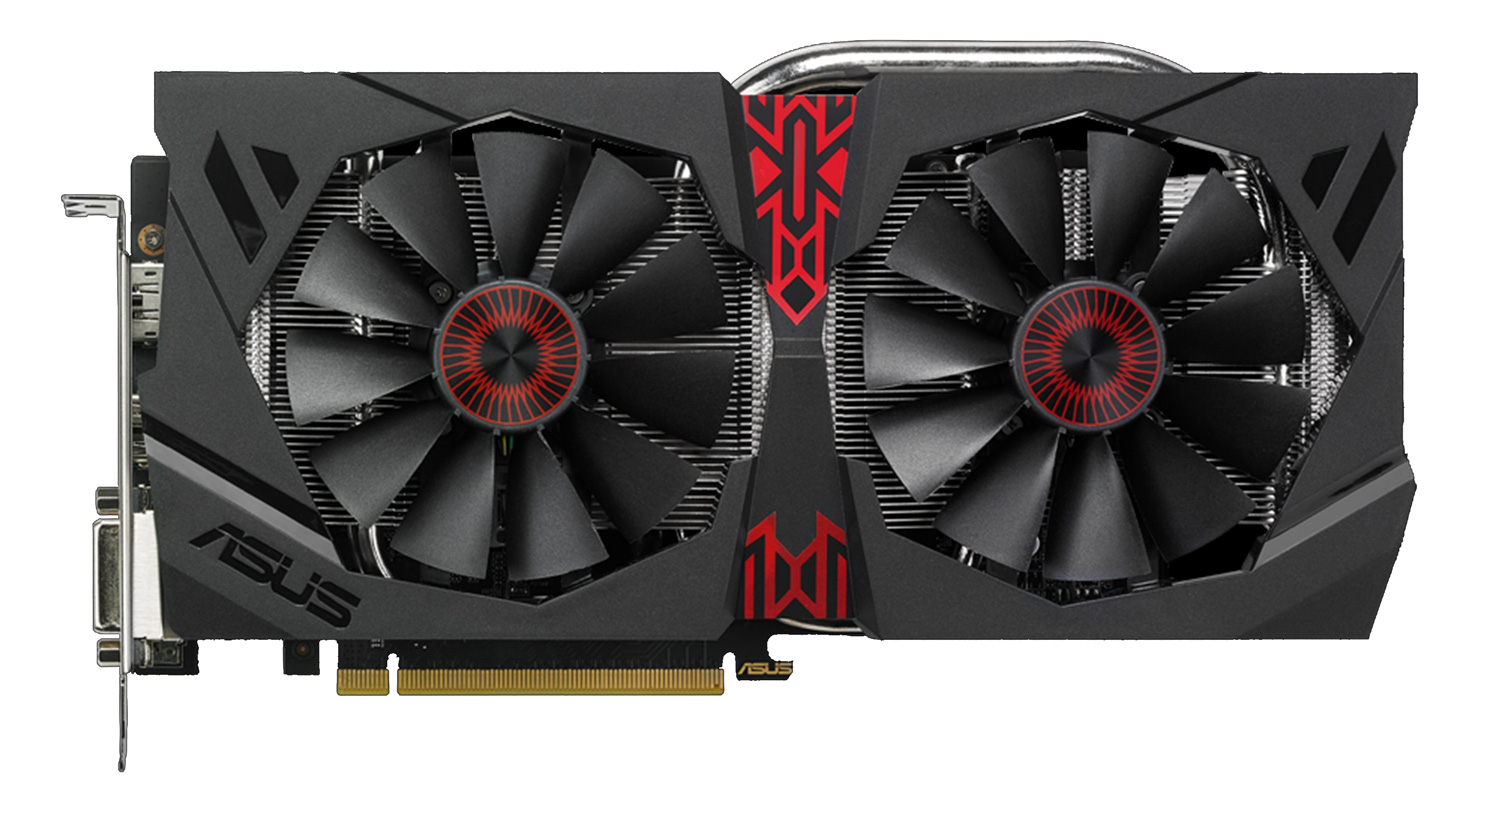 Final Words - The AMD Radeon R9 380X Review, Feat  ASUS STRIX